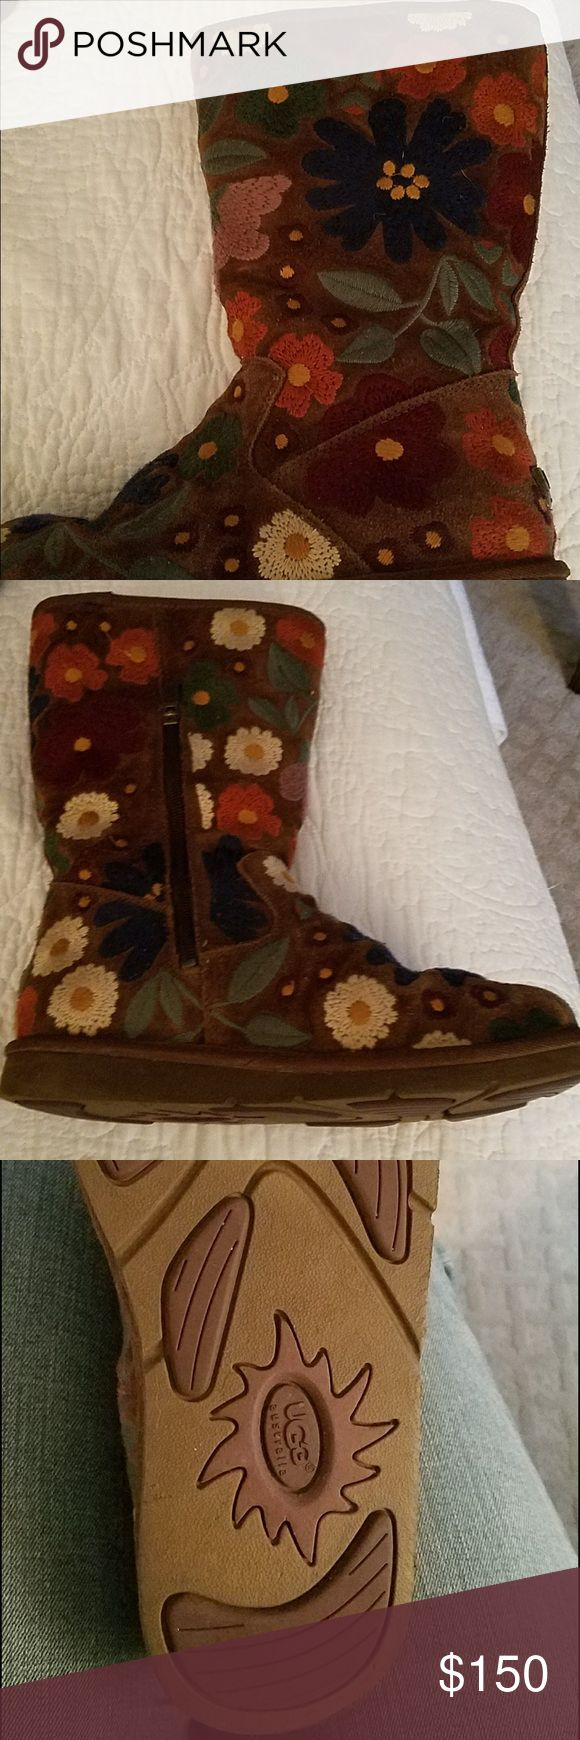 UGG Australia Wahine Boot Limited Edition Size 10 Beautiful floral embroidered rare UGG boots! Excellent condition , only worn twice. Not available on any retail sites! UGG Shoes